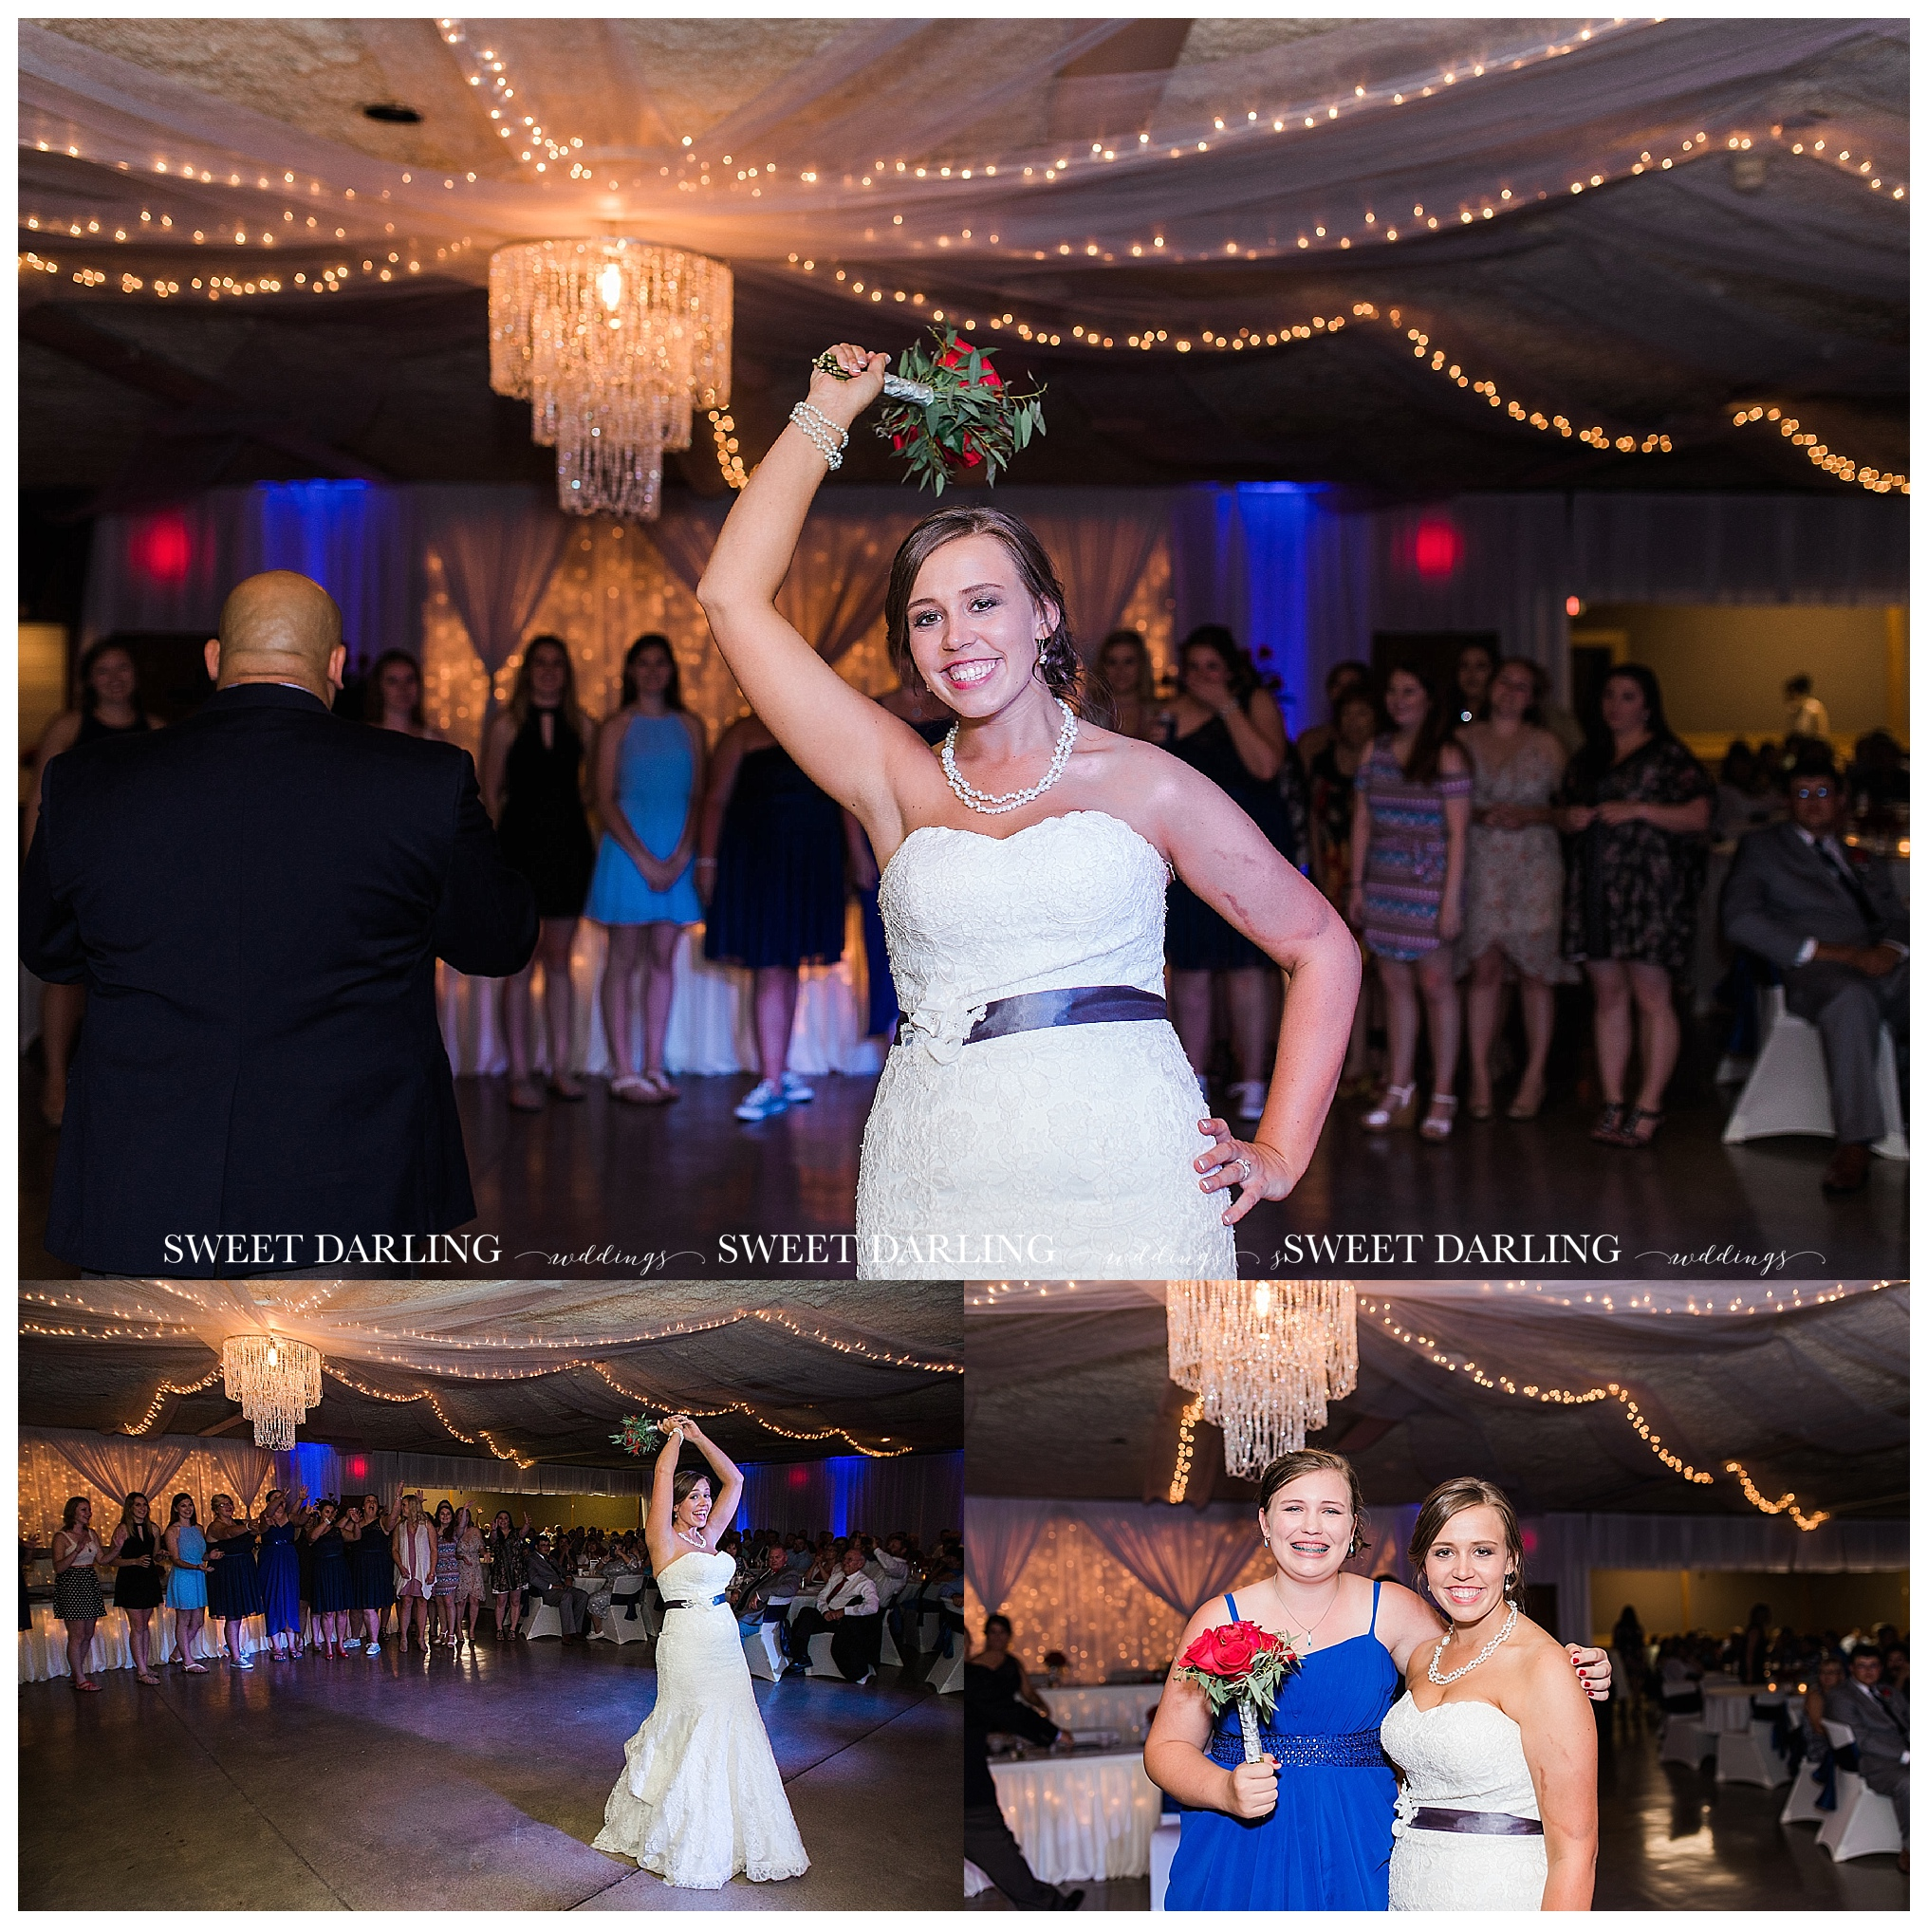 champaign-county-royal-paxton-illinois-sweet-darling-weddings-photography-red-navy-roses_1393.jpg